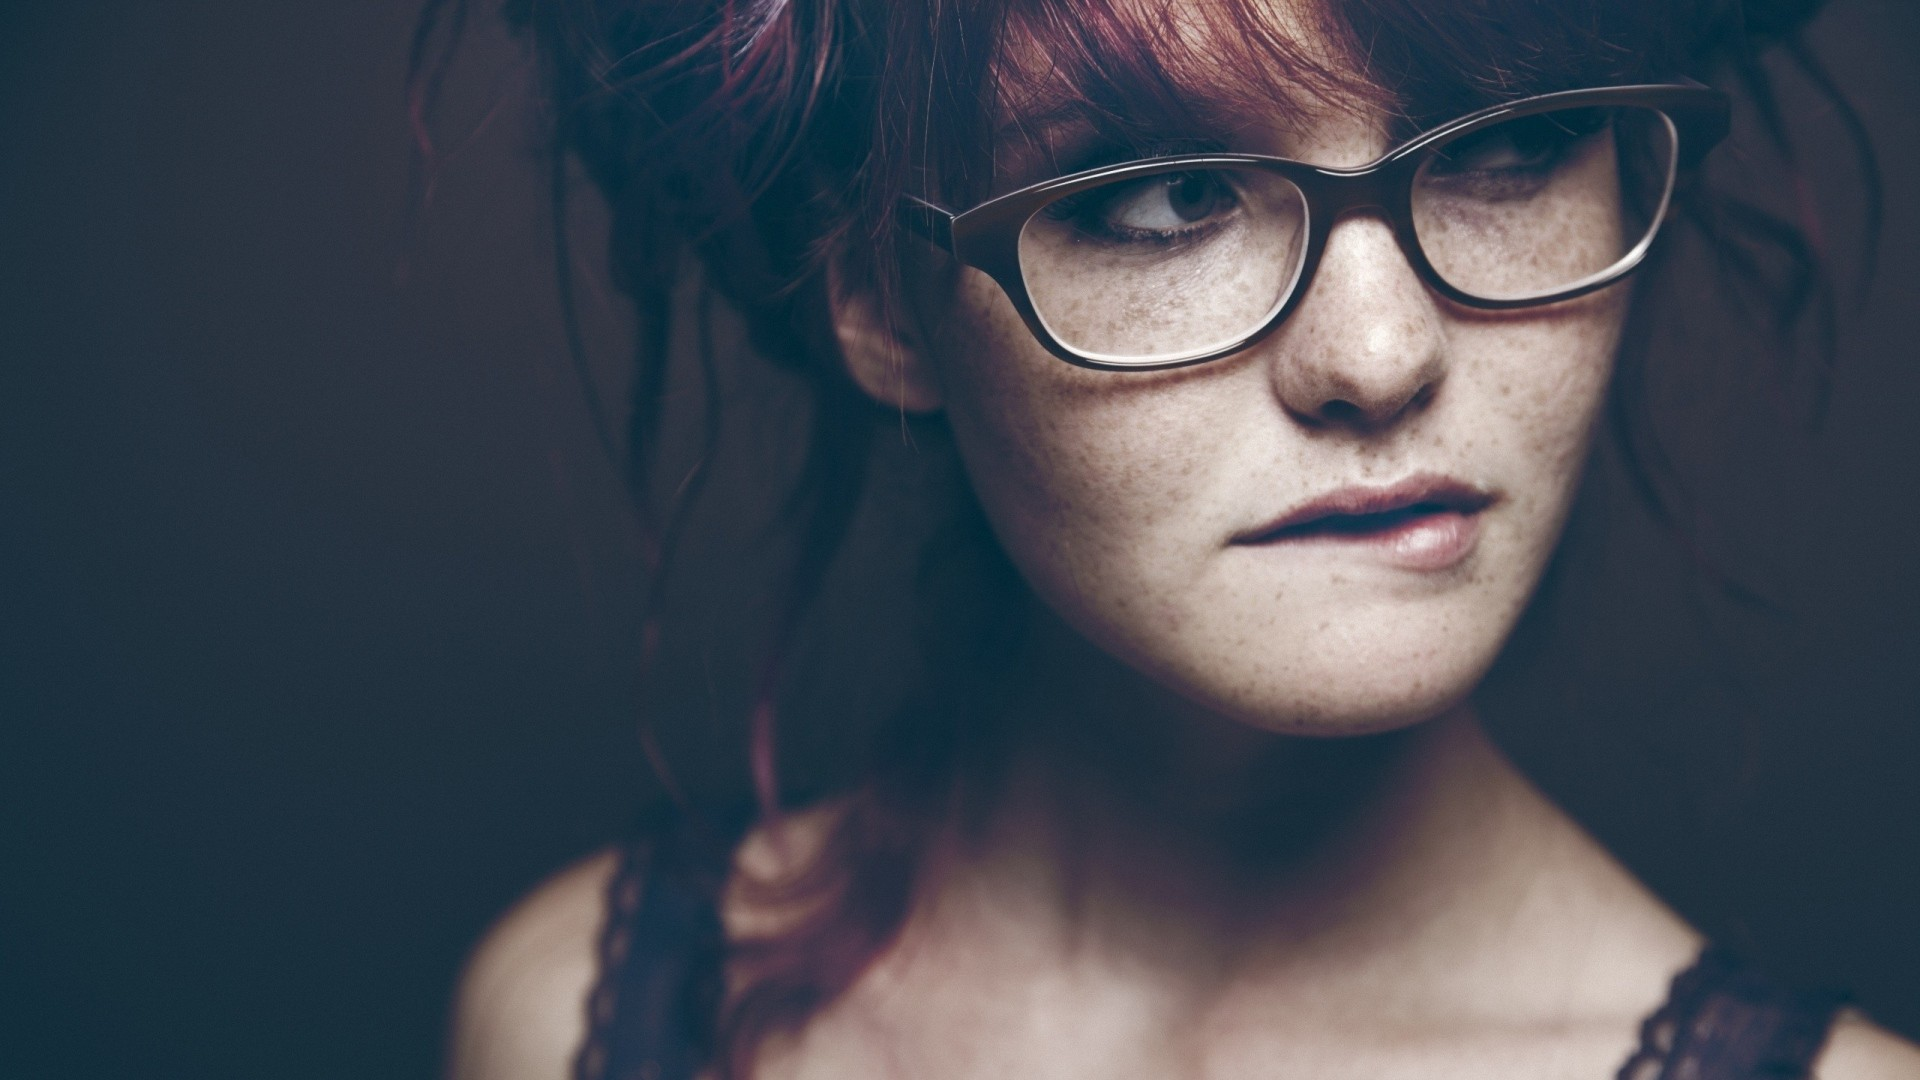 Preview wallpaper redhead, girl, glasses, eyes, freckles 1920×1080